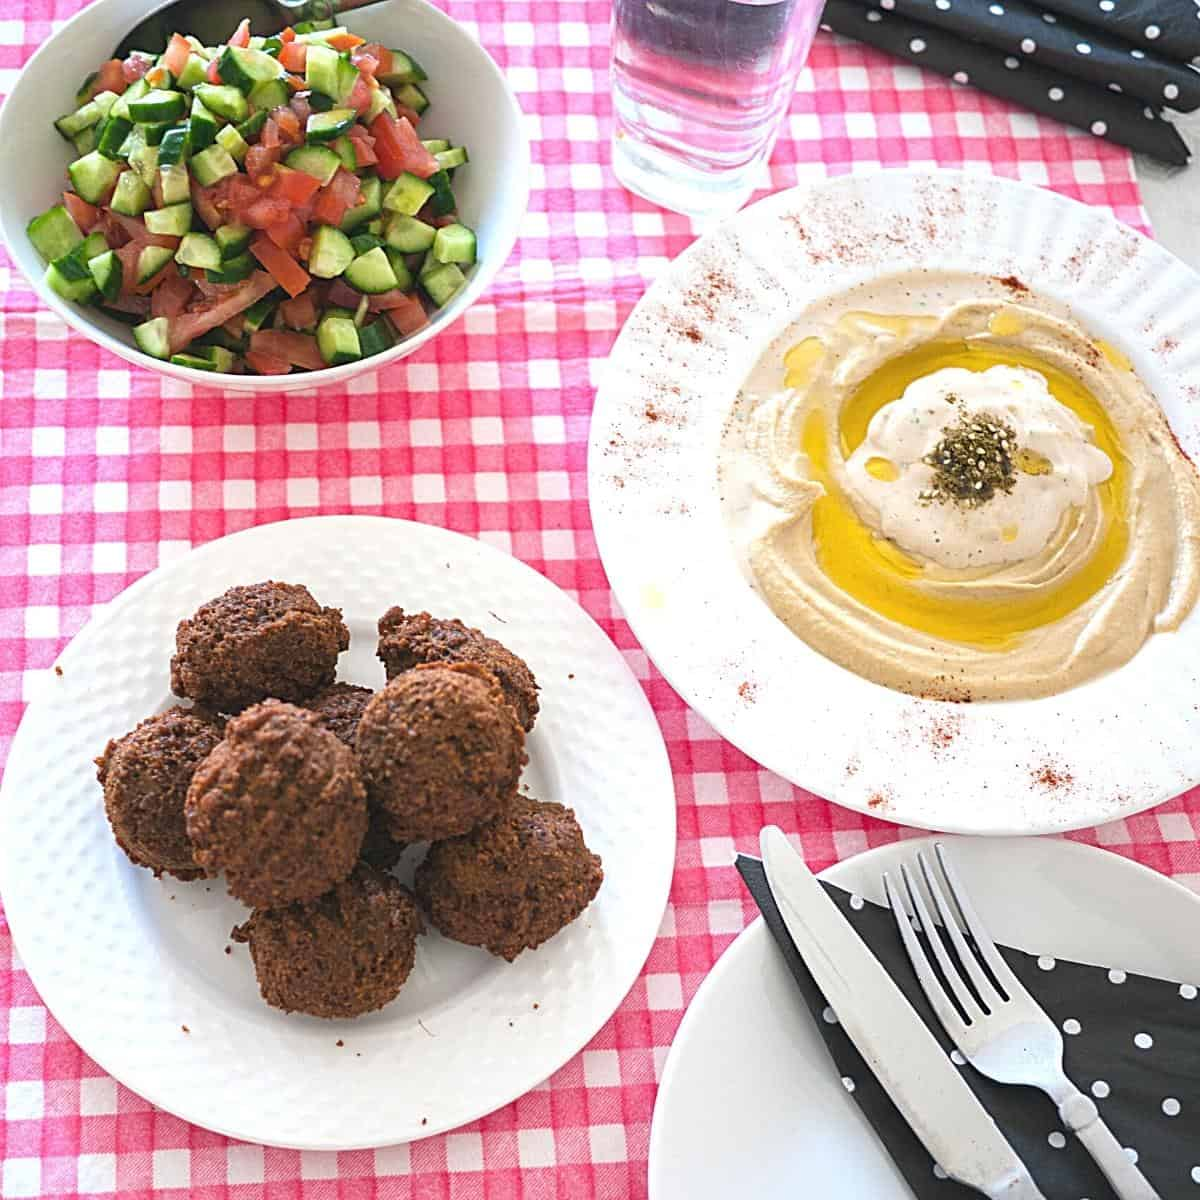 Falafel with hummus on a table.